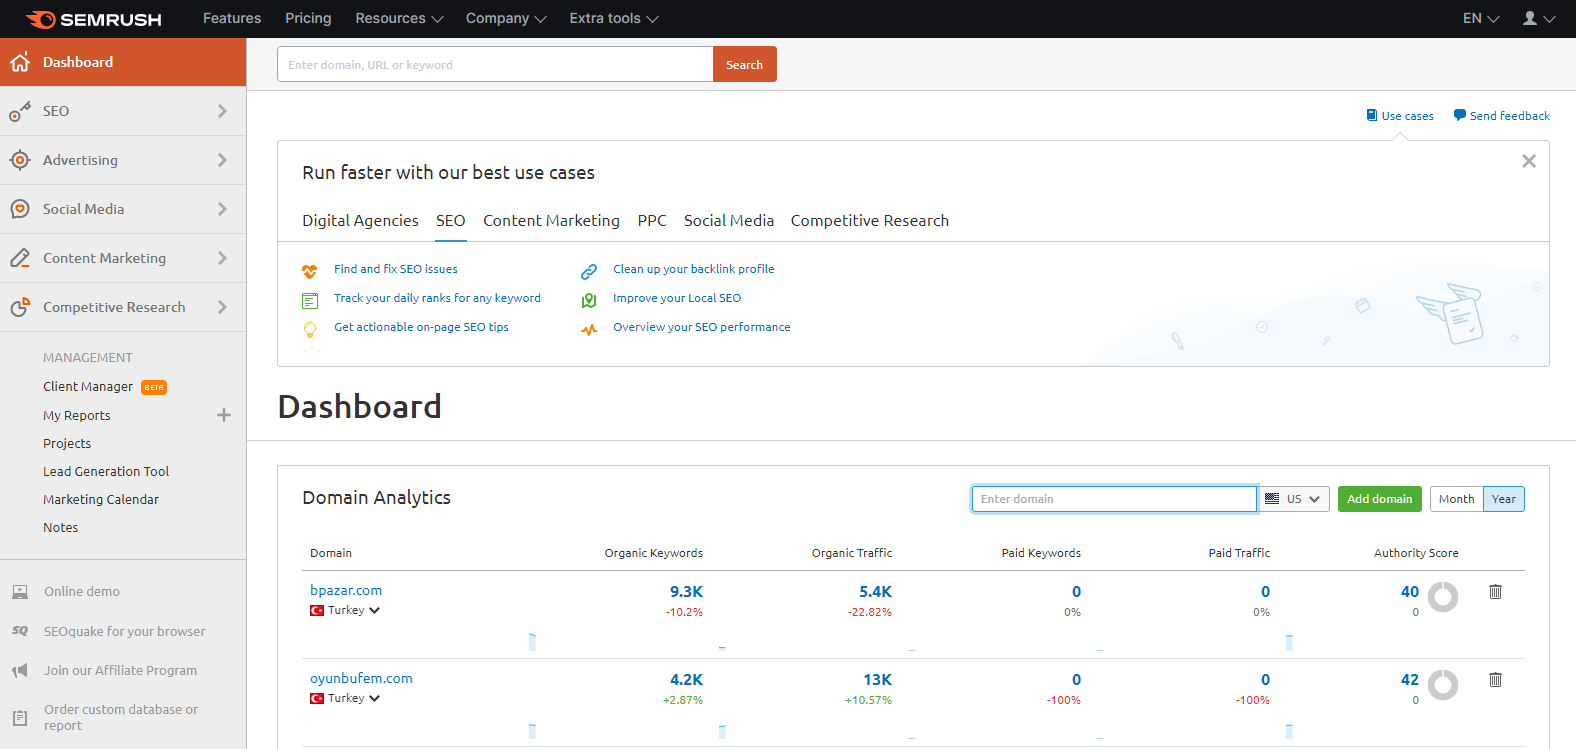 semrush group buy dashboard